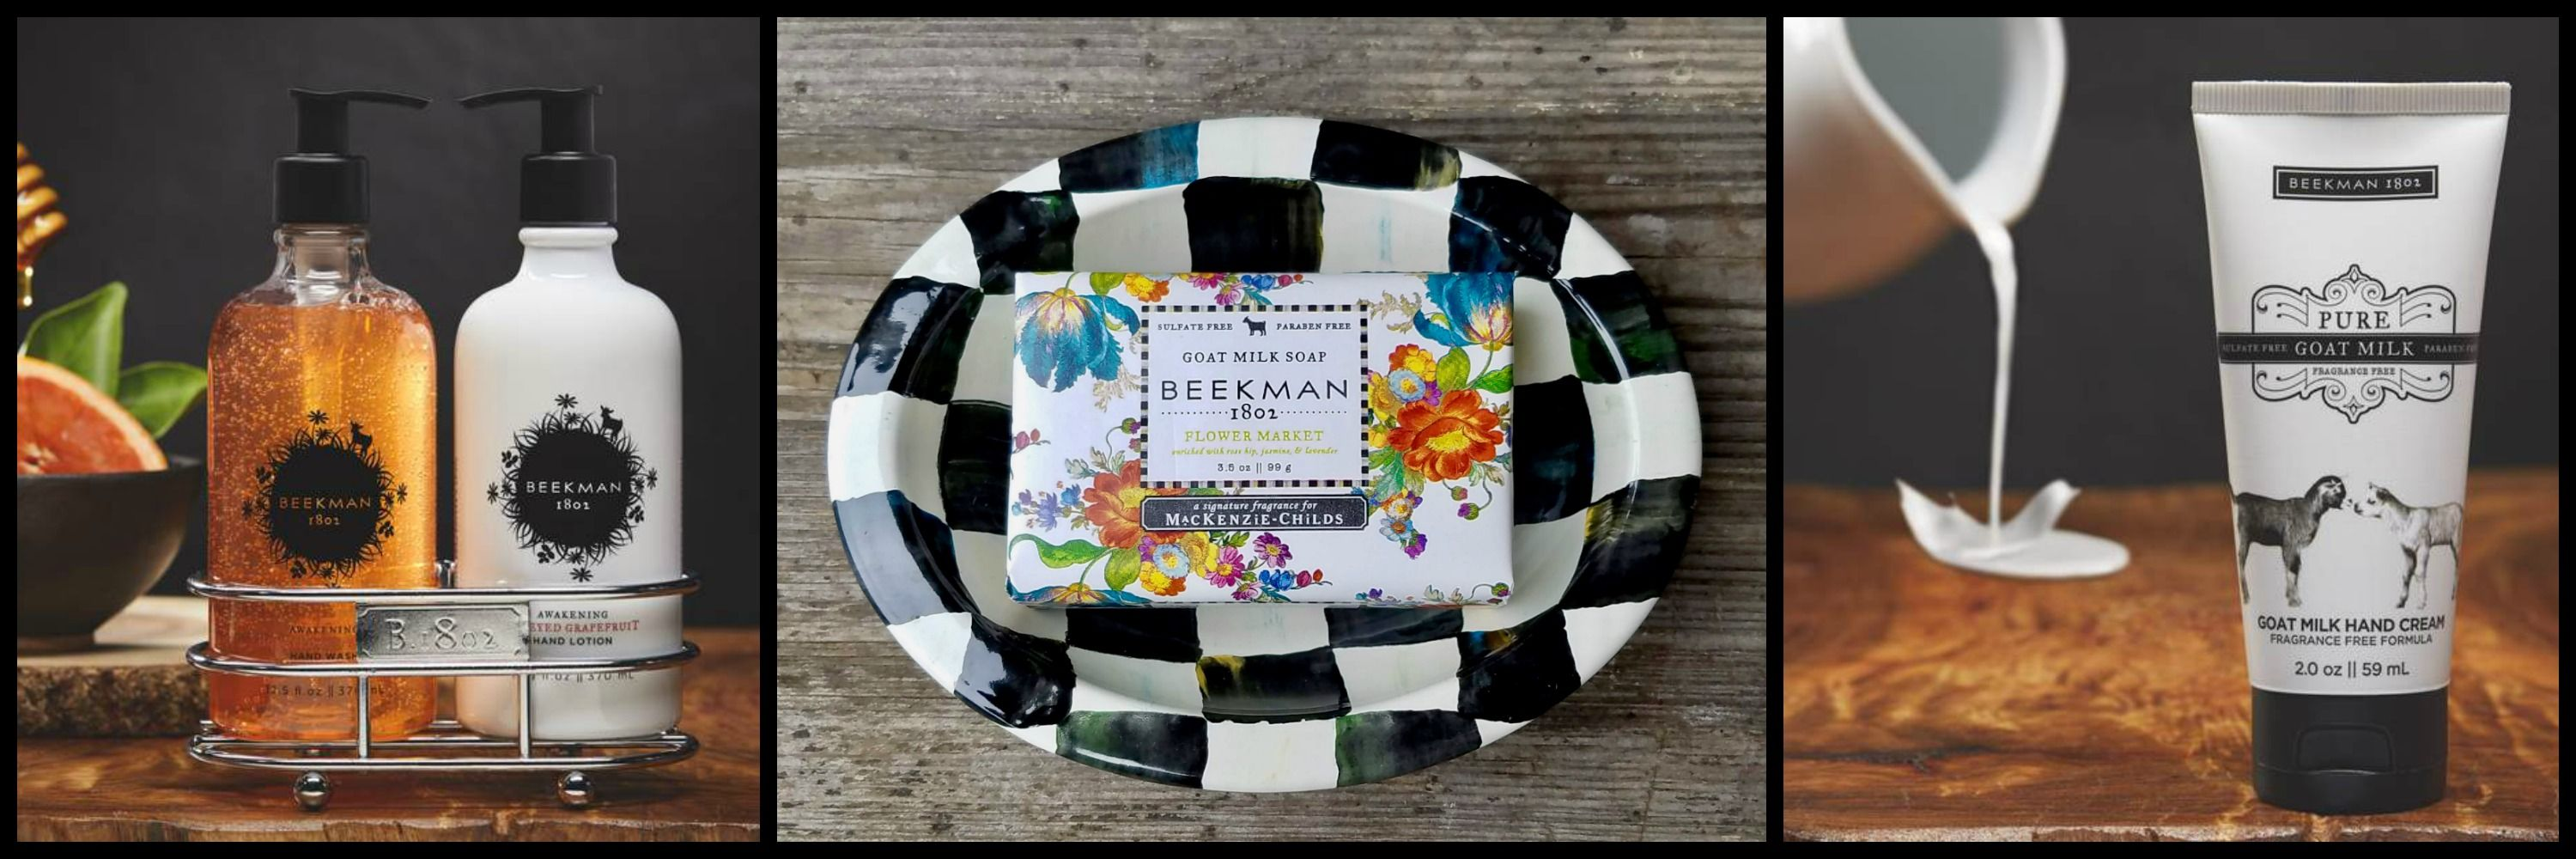 No Better Way To Pamper Yourself Than With Beekman 1802 Goat Milk